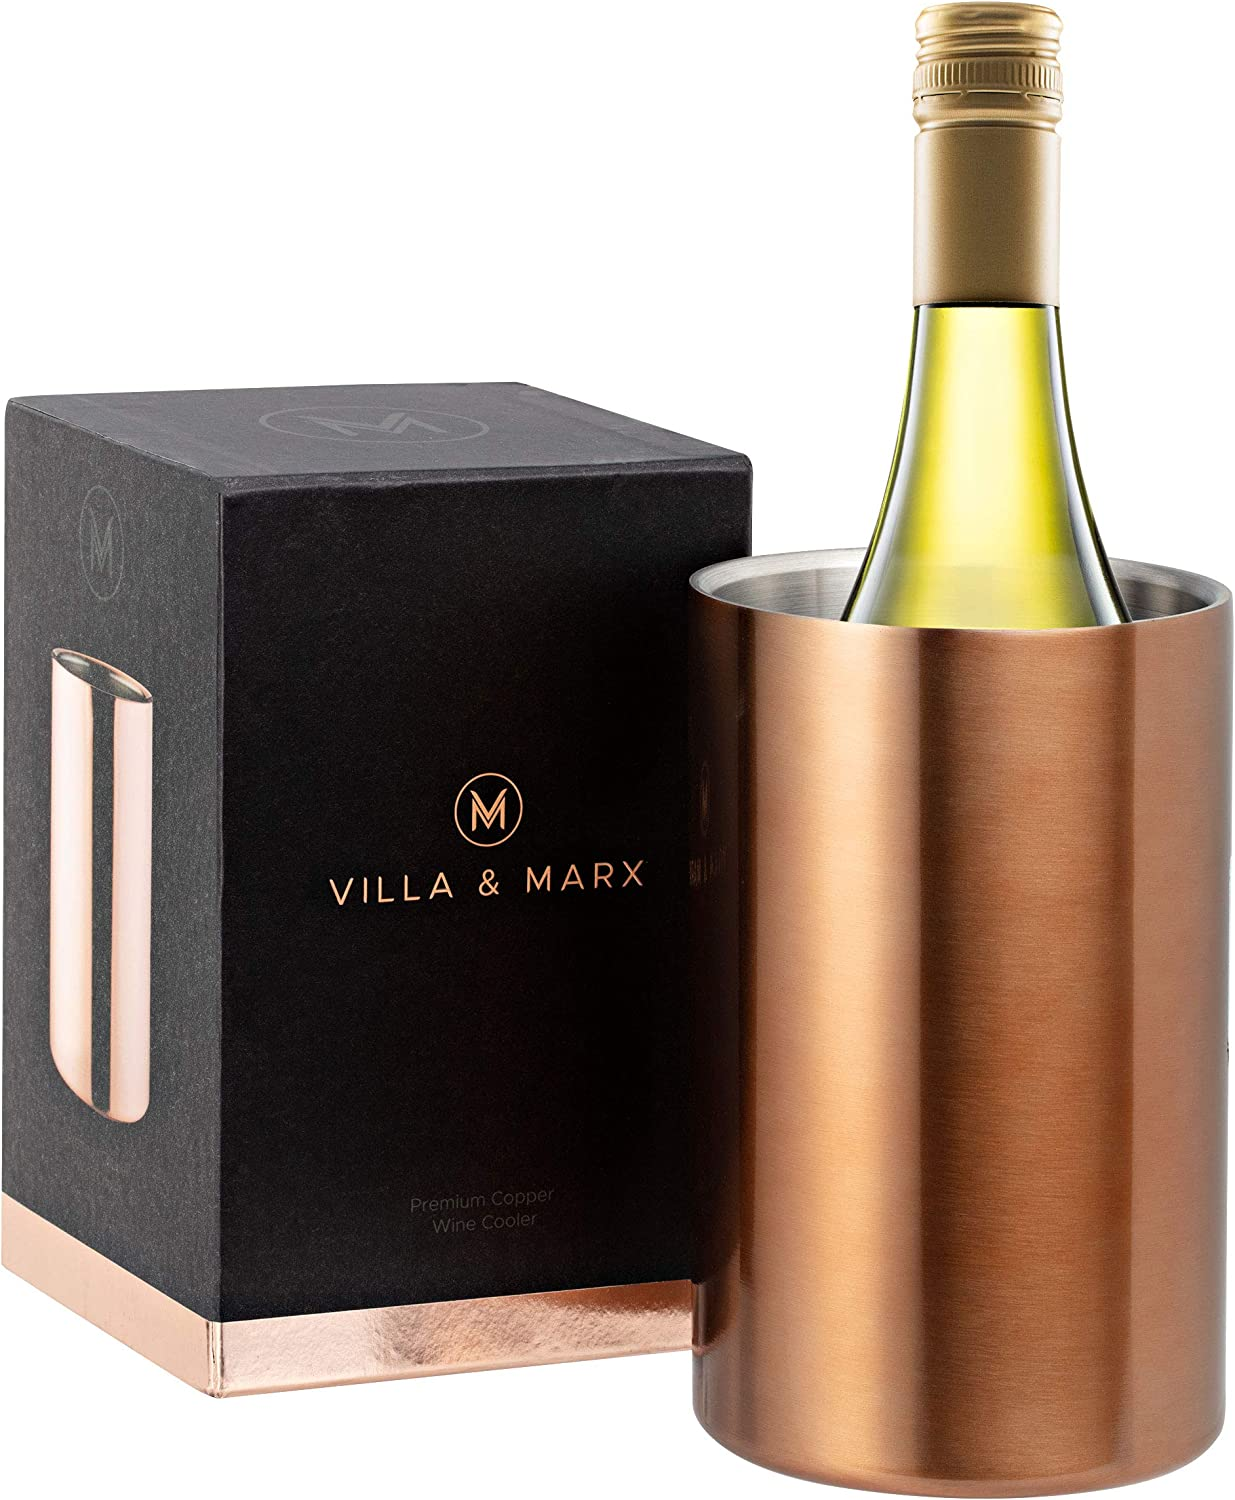 Villa & Marx Wine Chiller - Elegant Champagne Bucket with Copper Finish - Insulated Wine Bottle Cooler Without Ice - Double Walled Wine Chiller Bucket, Fits And Cools All Bottles